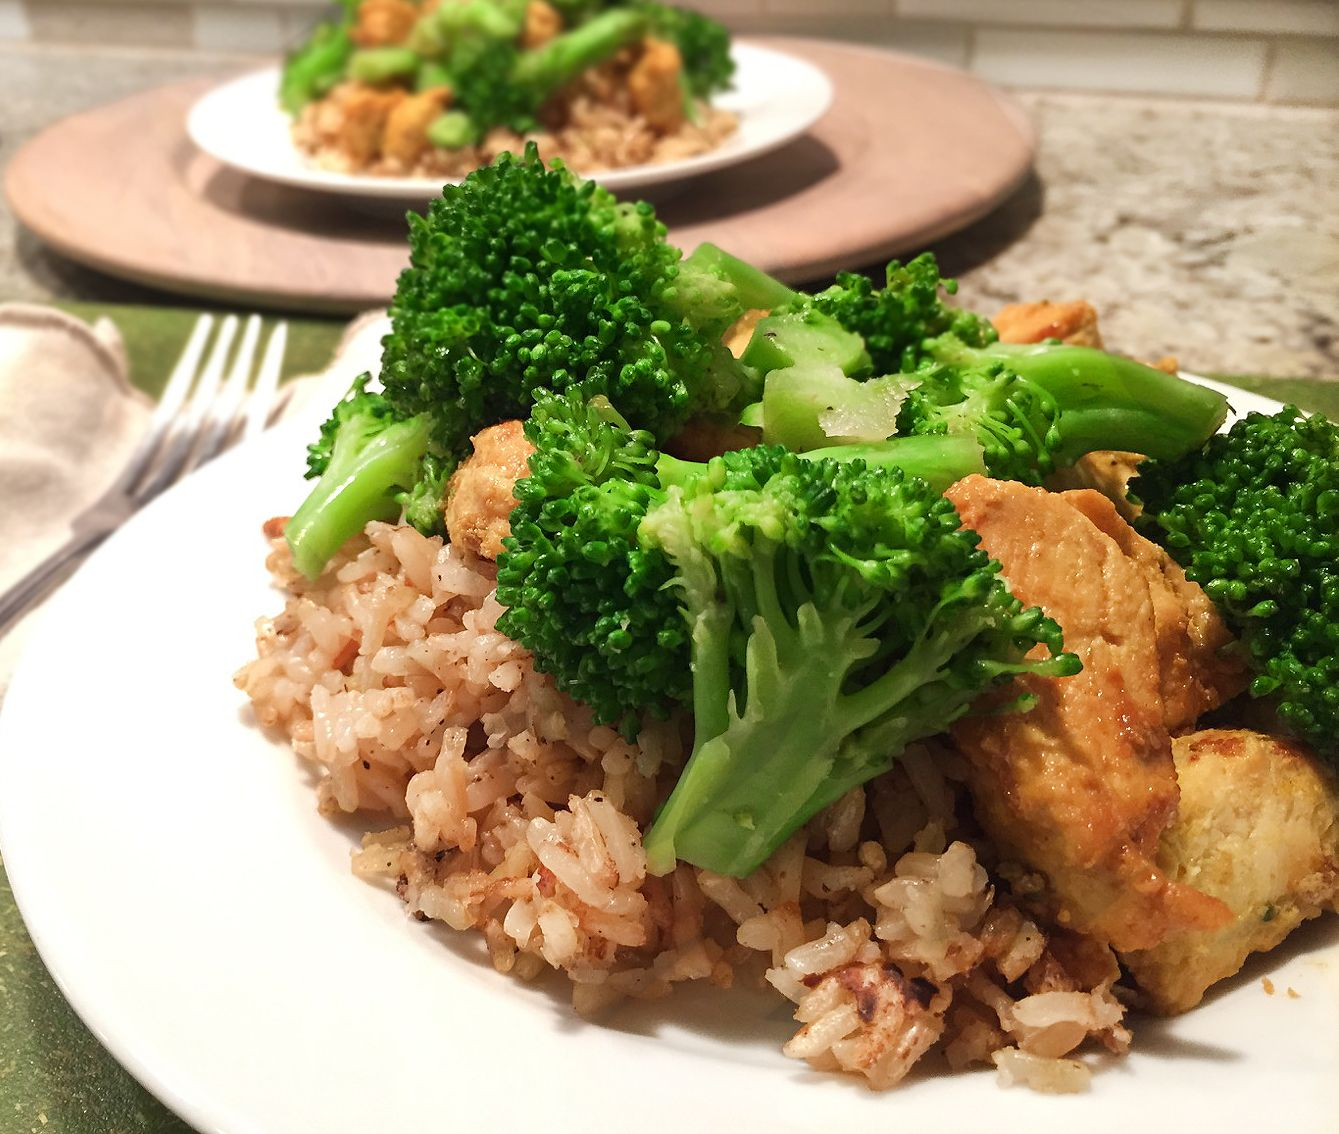 Healthy And Clean Eating! Orange Ginger Chicken Dinner